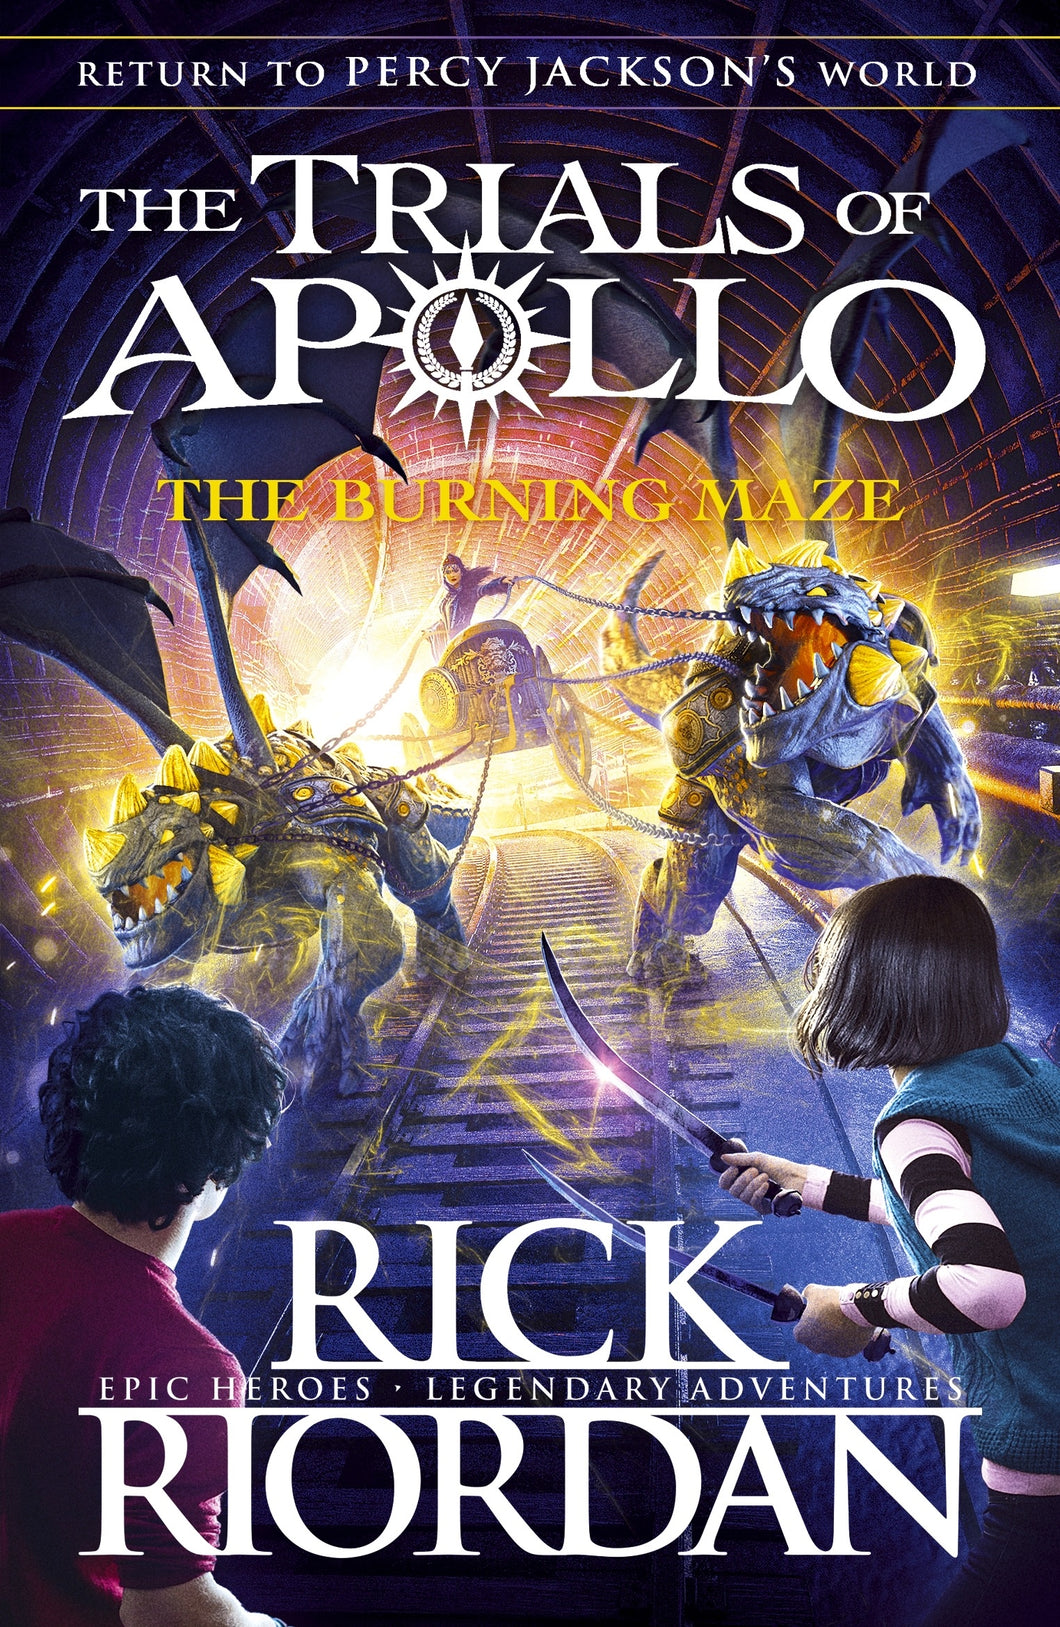 The Trials of Apollo3: The Burning Maze by Rick Riordan